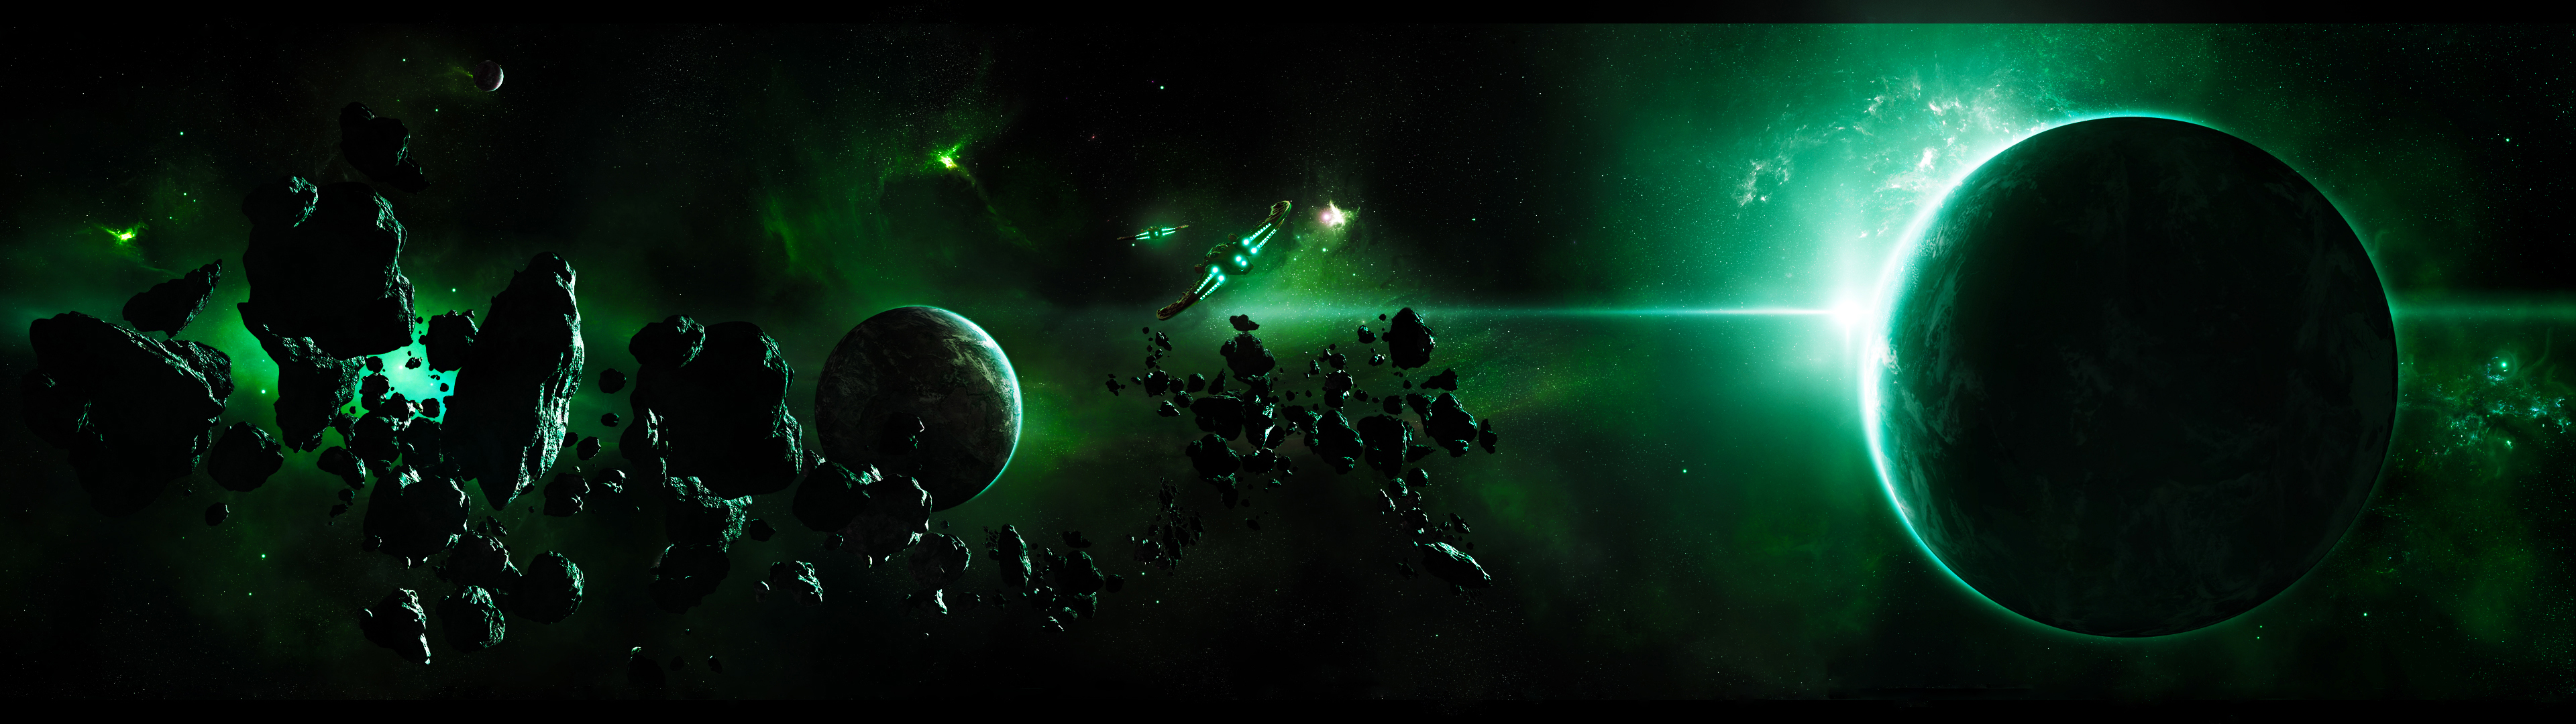 Green Planet Wallpaper | 3840x1080 | ID:20748